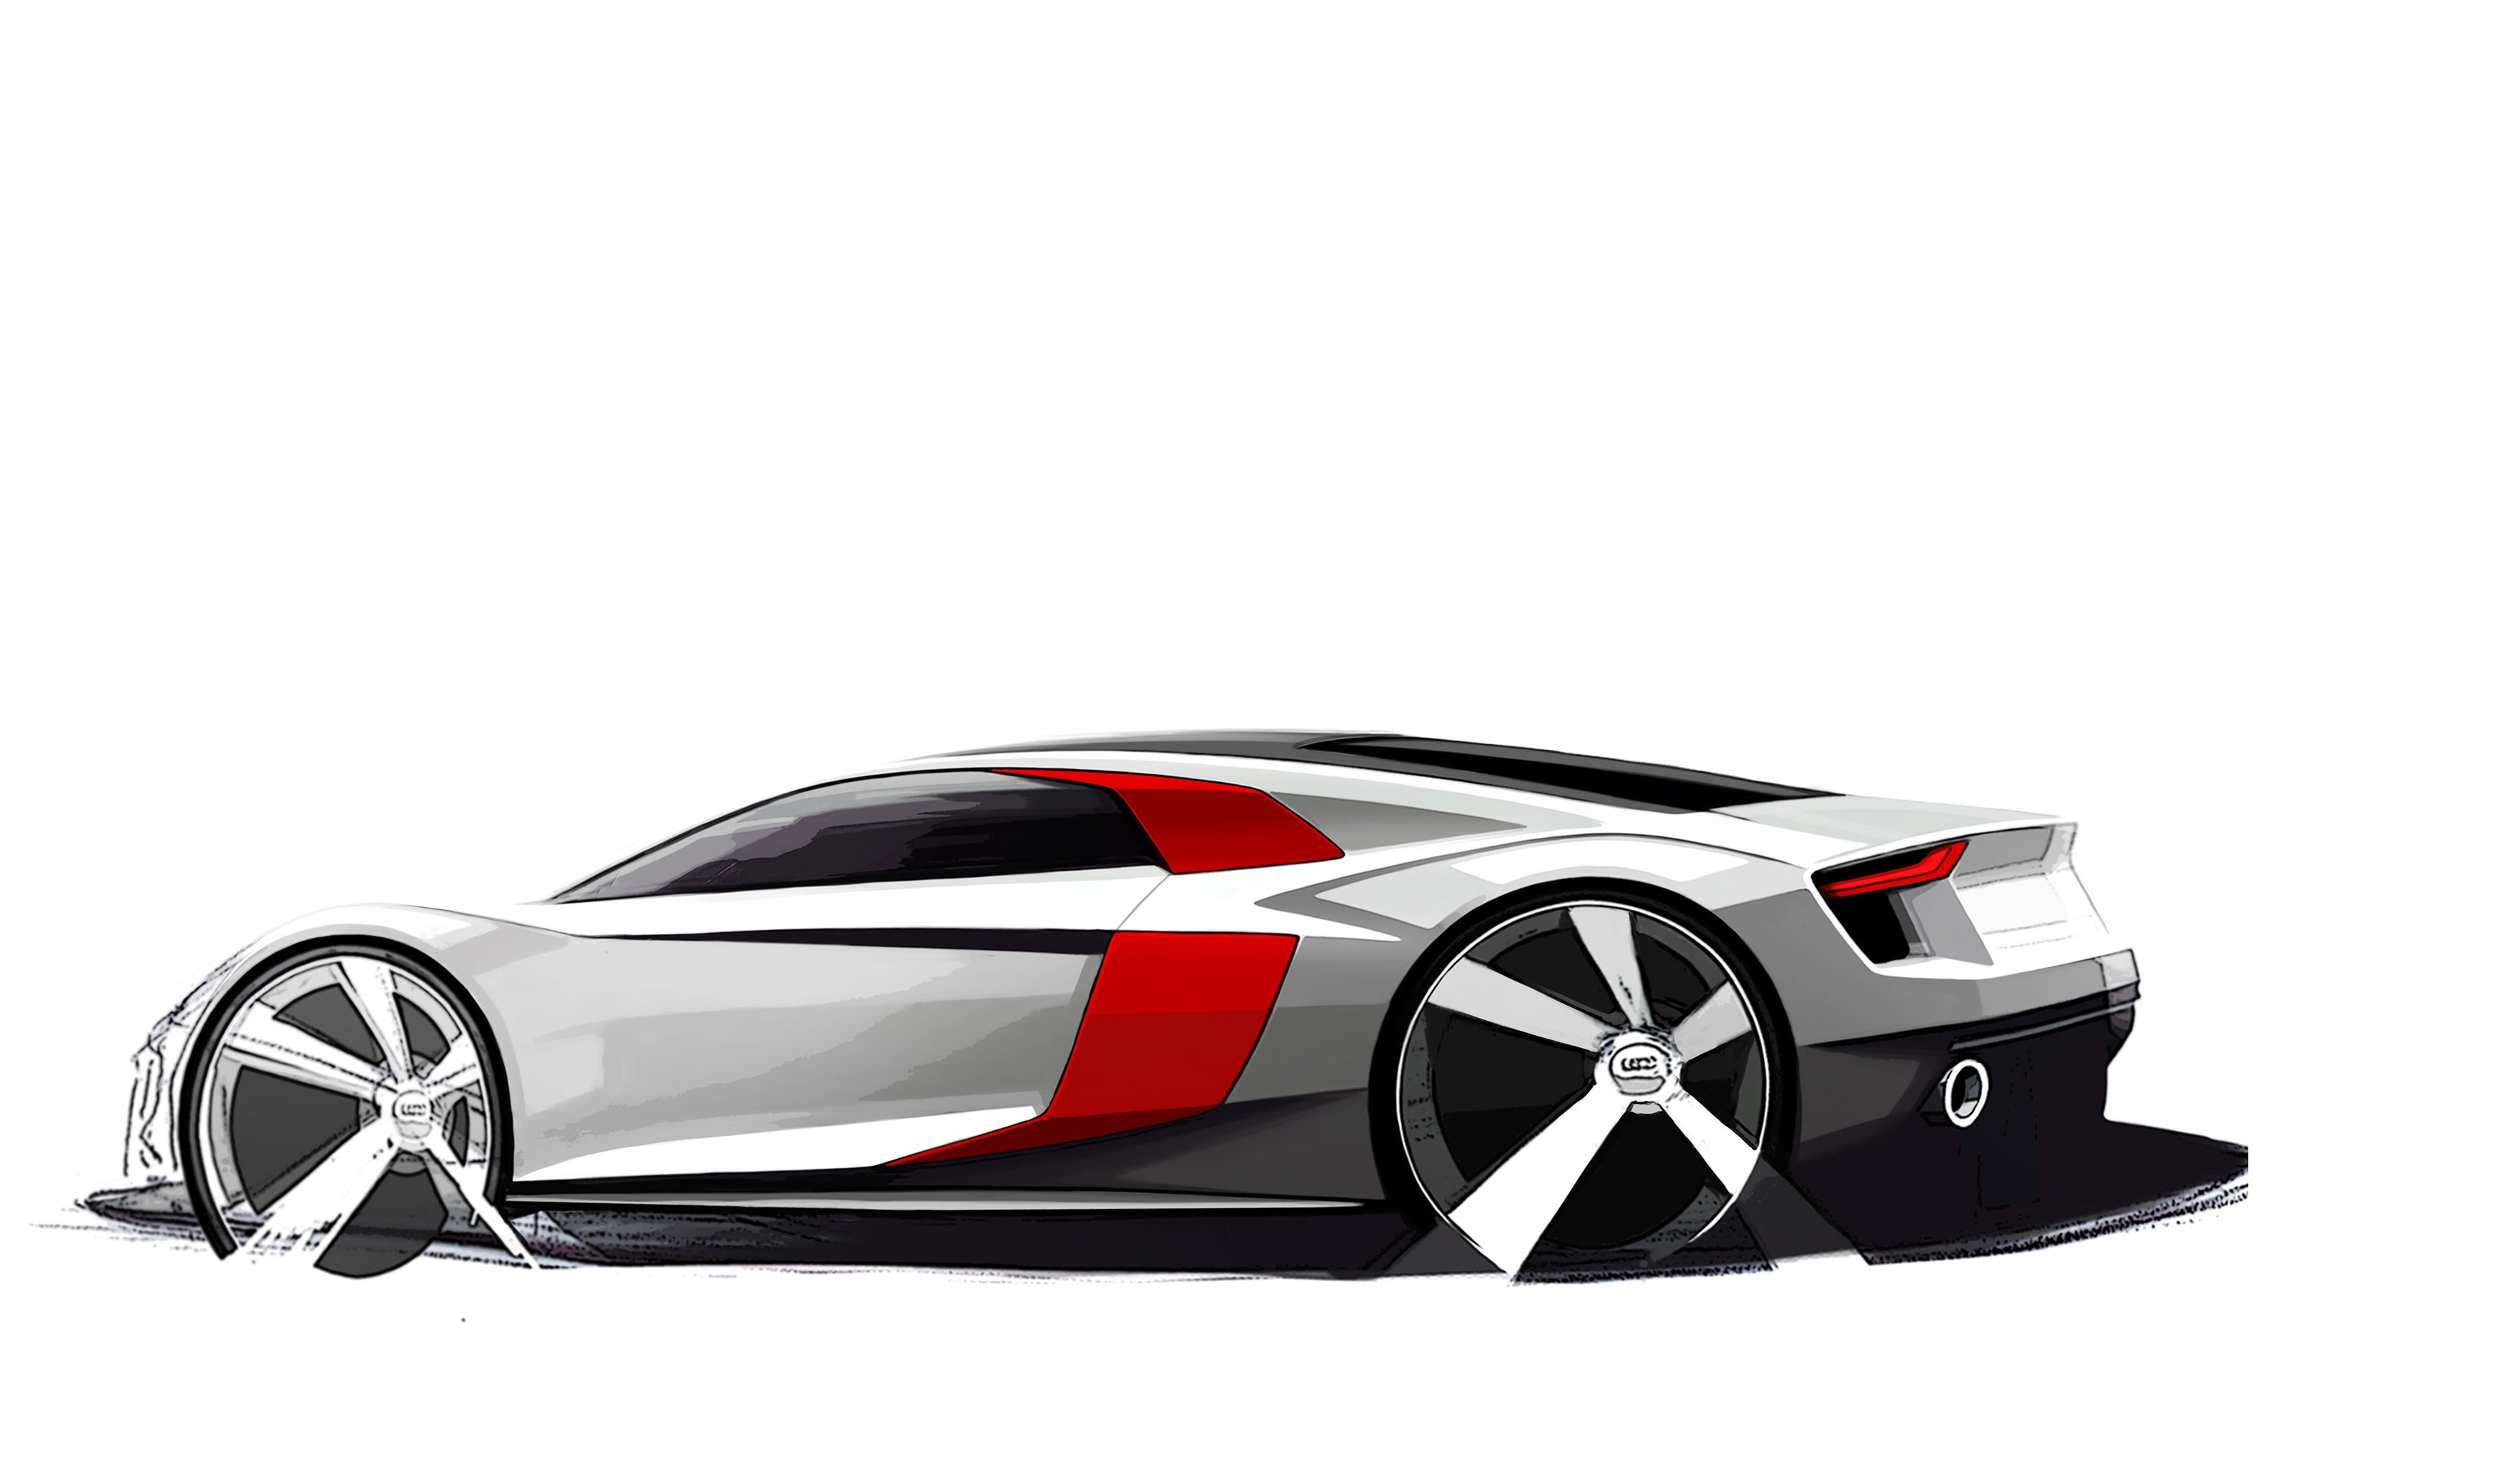 2016 Audi R8 Design Sketches Are Something to Geek Over - autoevolution